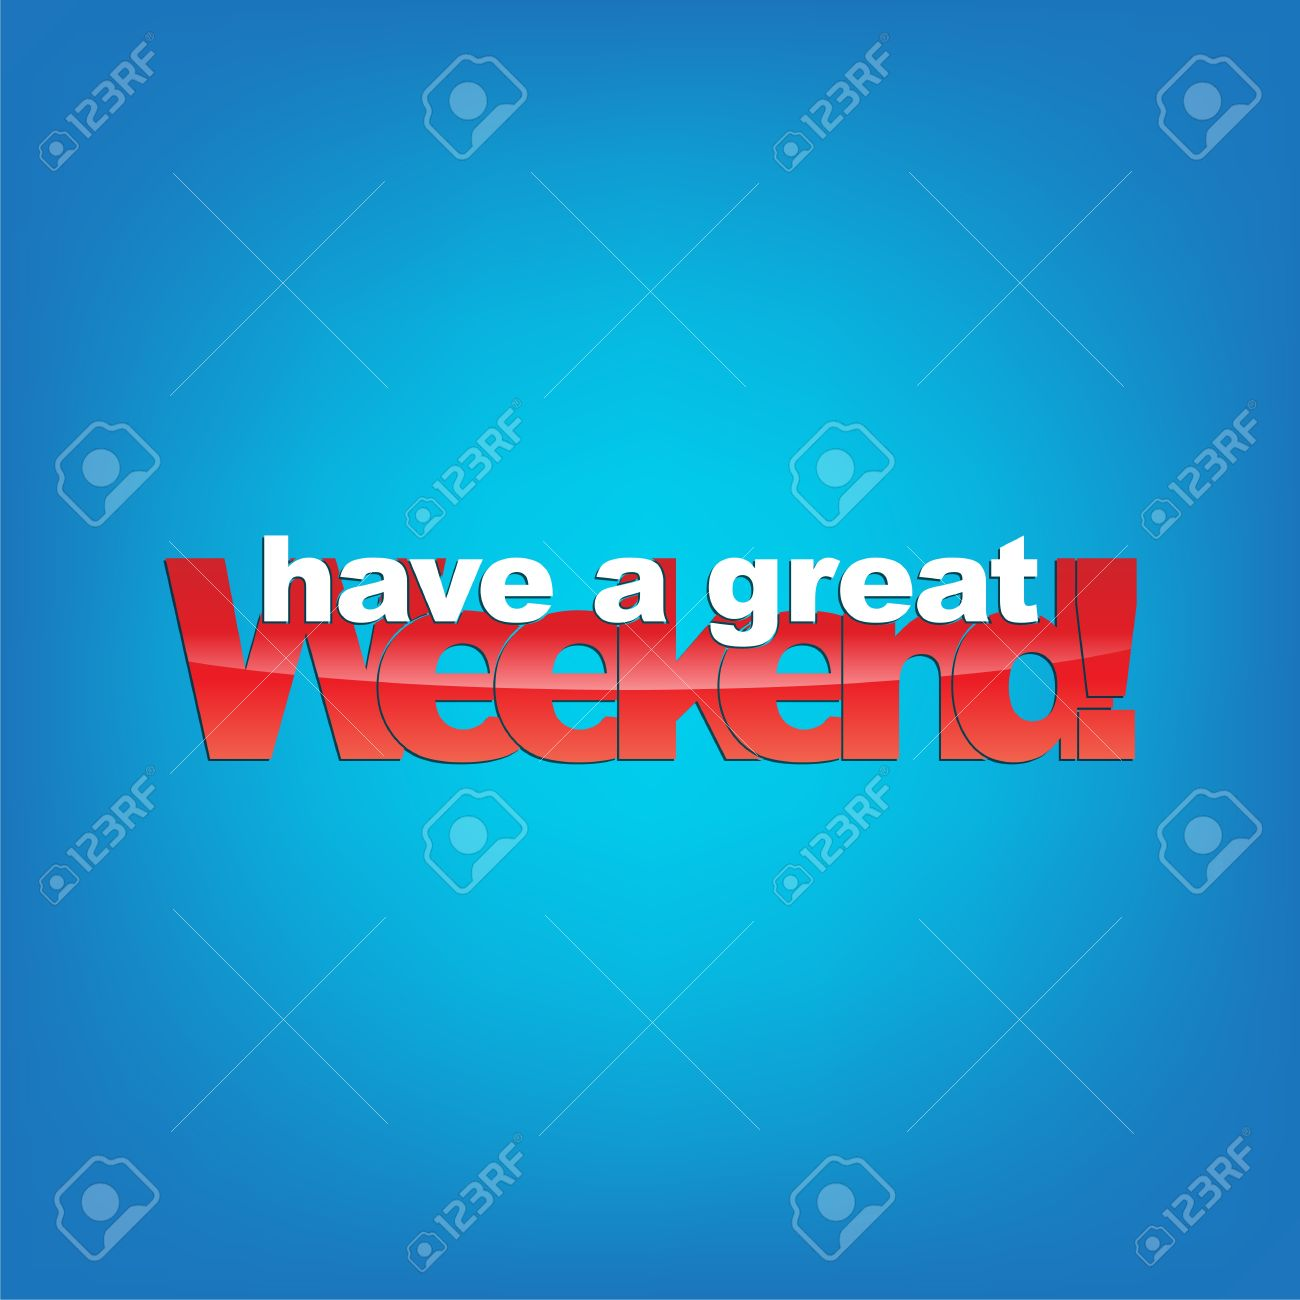 Have a great weekend! Typography background. Stock Vector - 22150696